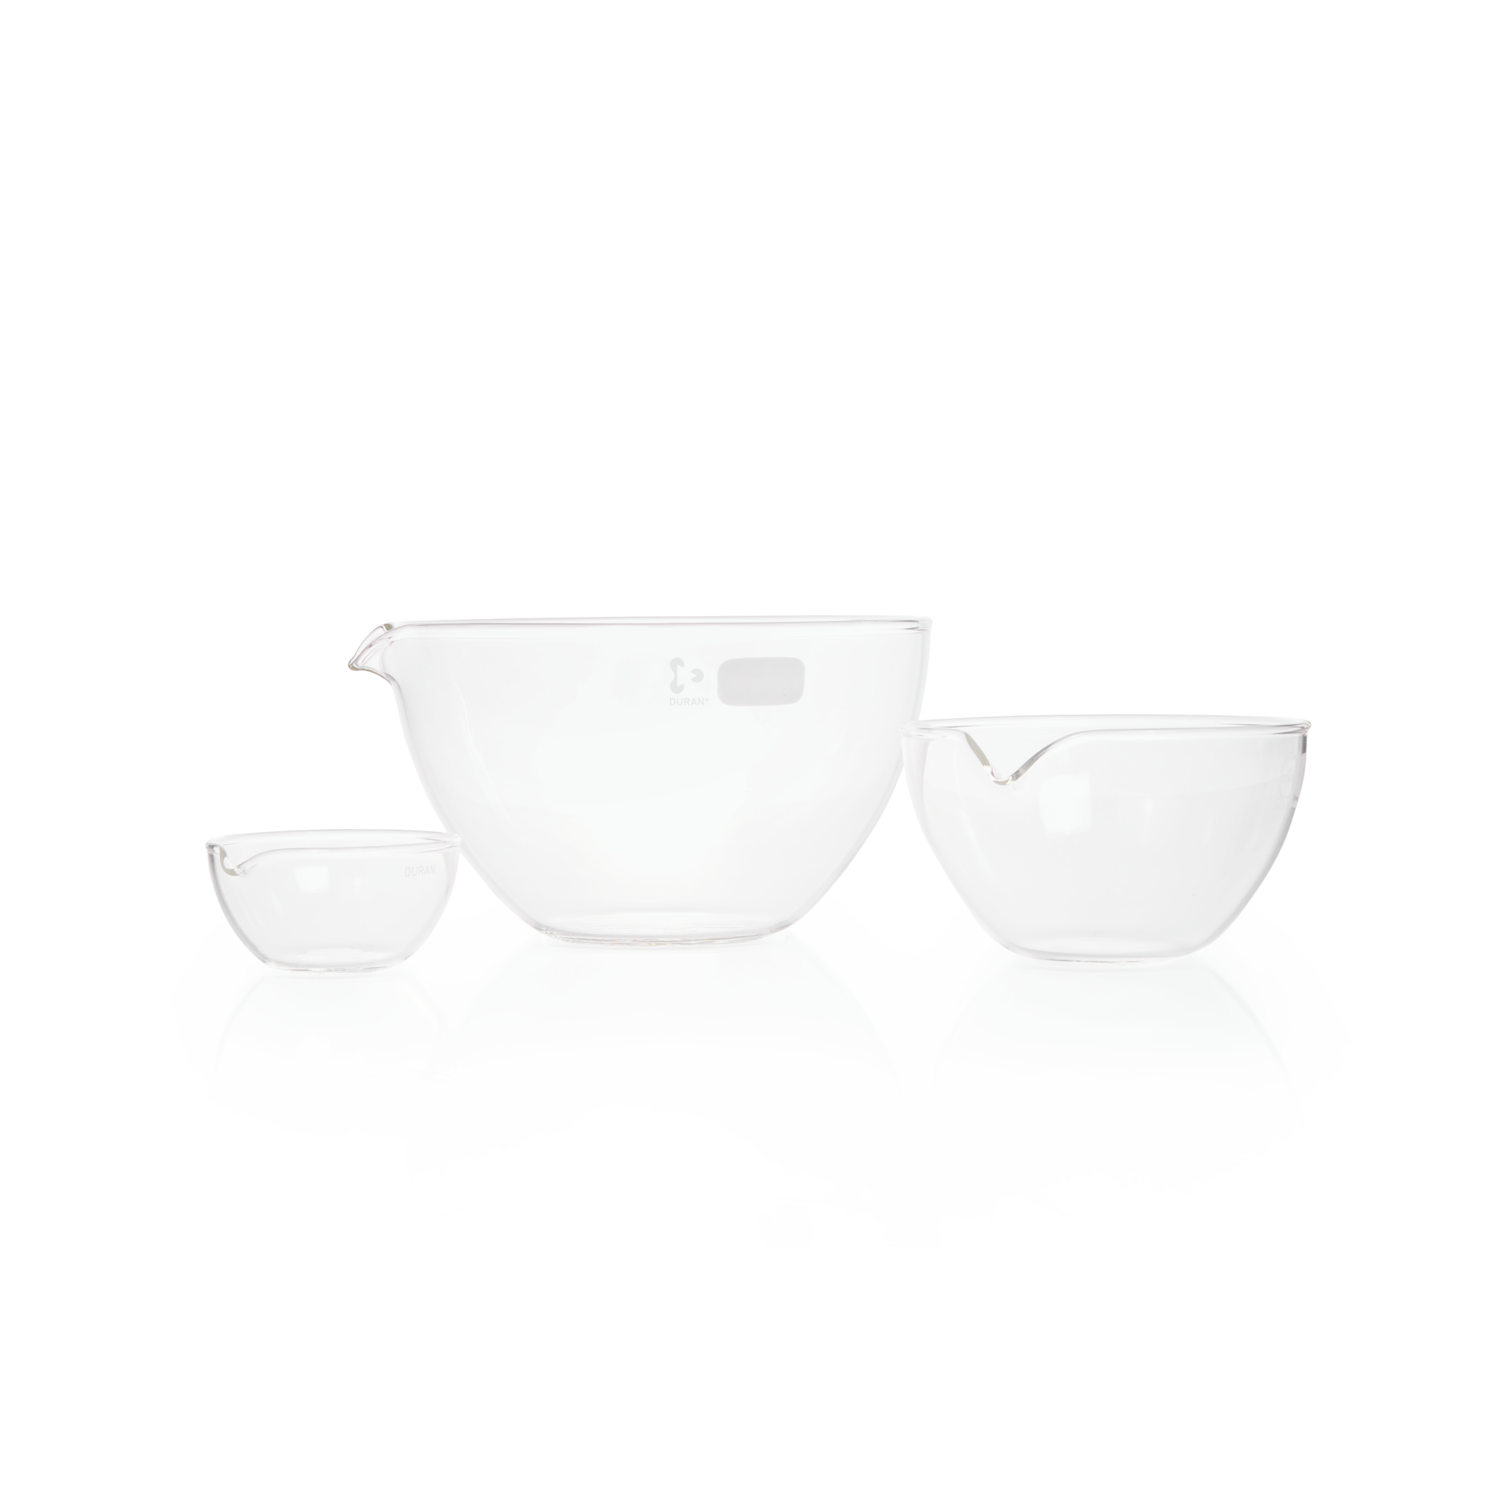 DURAN® Evaporating Dish, with spout, 320 mL